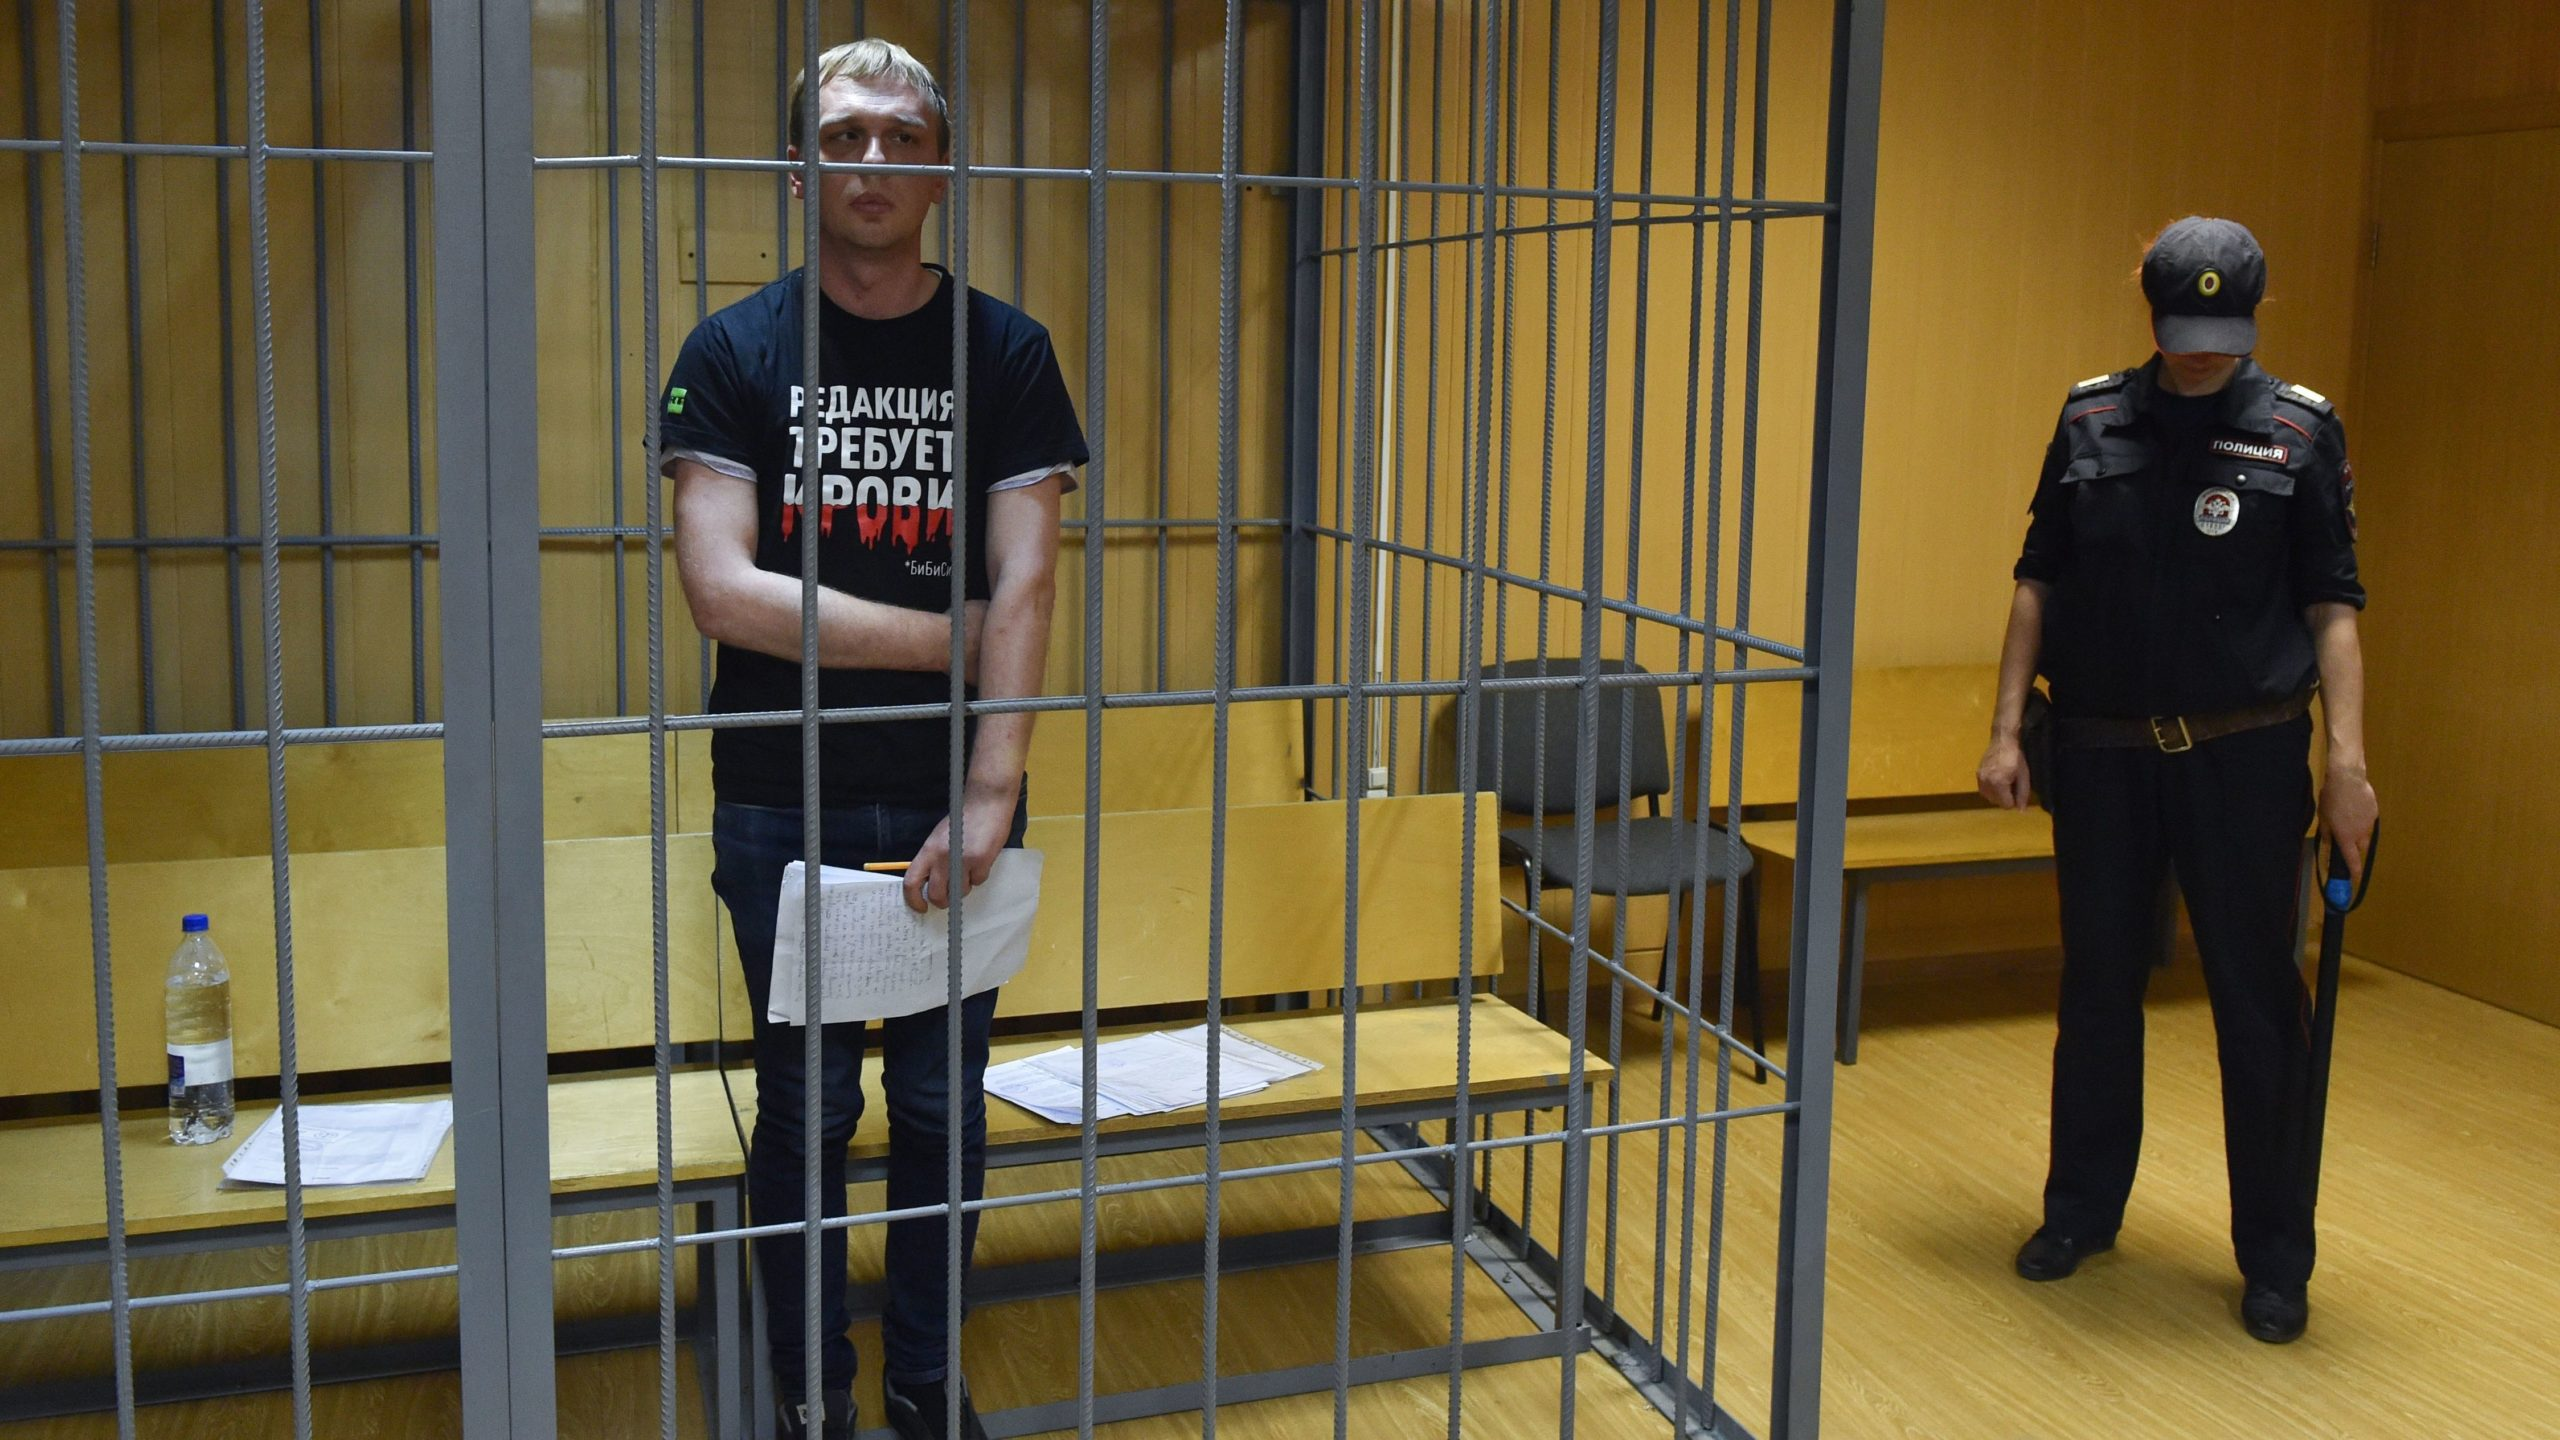 Russian investigative journalist Ivan Golunov inside the defendants' cage during a court hearing in Moscow.